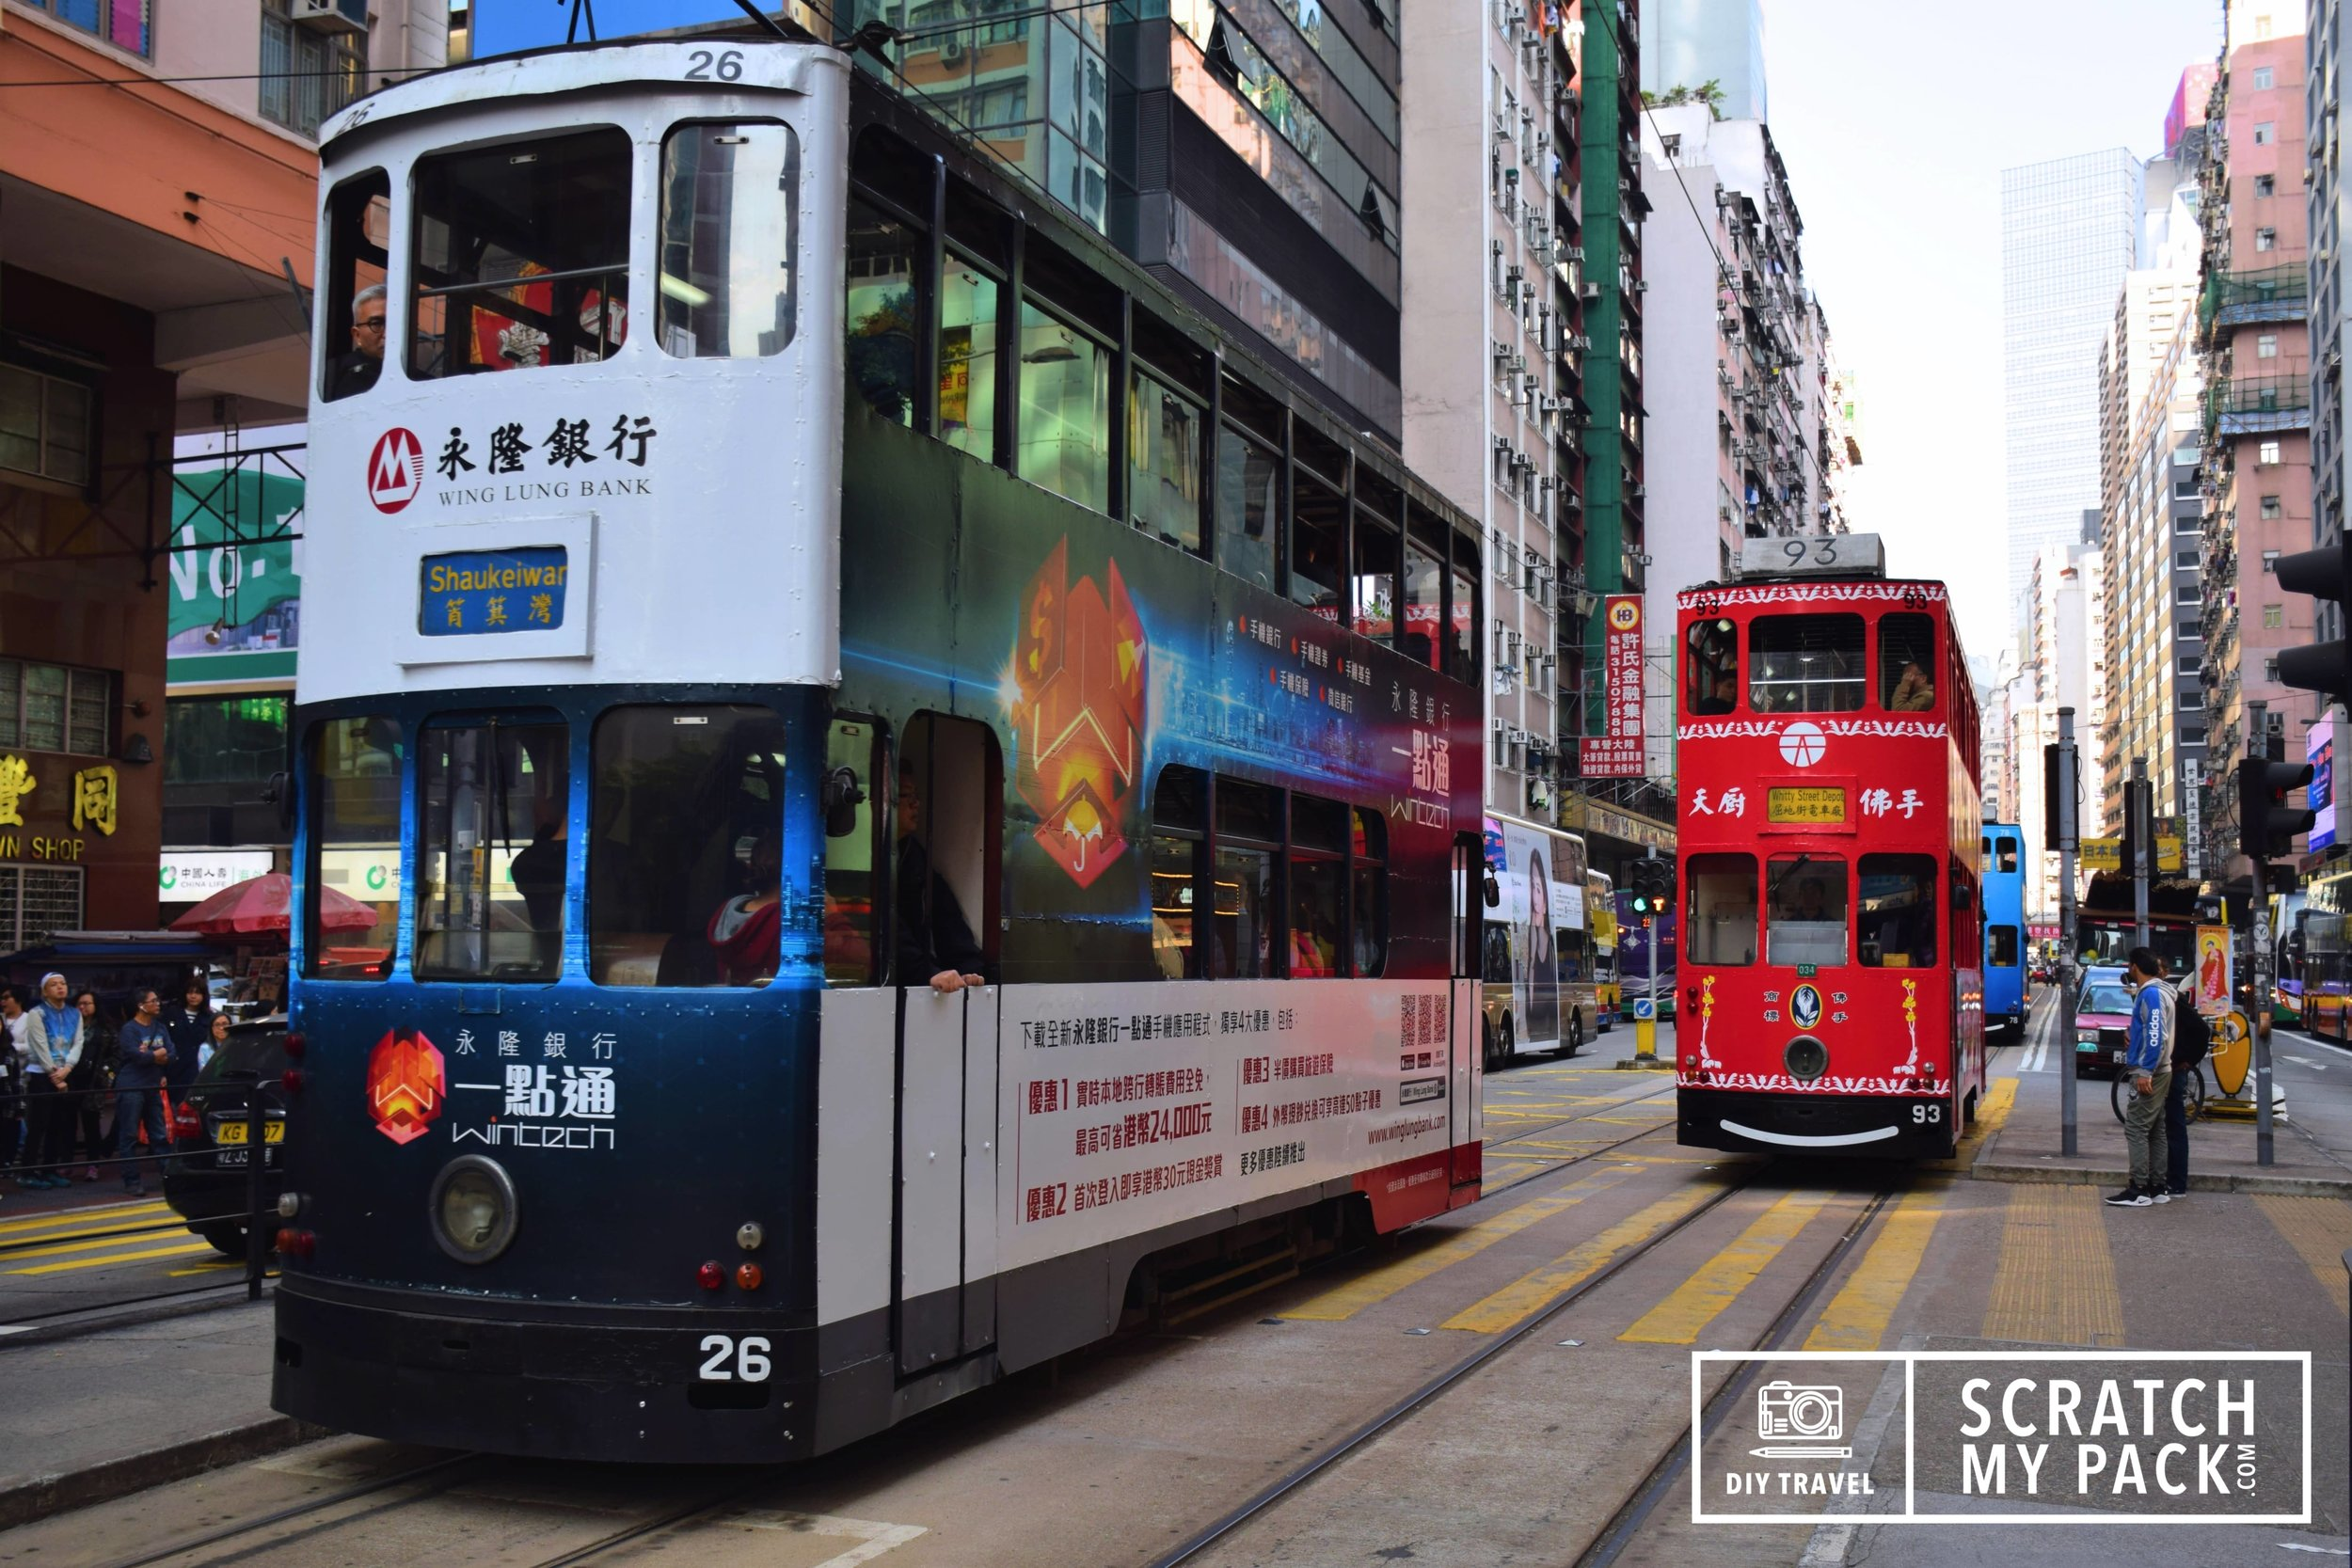 """Tram's  -  Cost: $2.30 -  The tram is the cheapest mode of public transport on the island. The comparatively affordable fare is highlighted by Hong Kong Tramways' advertising slogan: """"Hop on 1. $2.3. Tram so easy!"""" The tram system in Hong Kong and one of the earliest forms of public transport, is also a major tourist attraction and one of the most environmentally friendly ways of travelling in Hong Kong. The trams run on a double track tramline built parallel to the northern coastline. There are 7 tram termini located along the tram line. See the tram routes and more  here . Unlike most other forms of public transport in Hong Kong, fare charged is uniform regardless of the distance traveled. Passengers pay upon exiting by exact fare, or by the Octopus Card."""